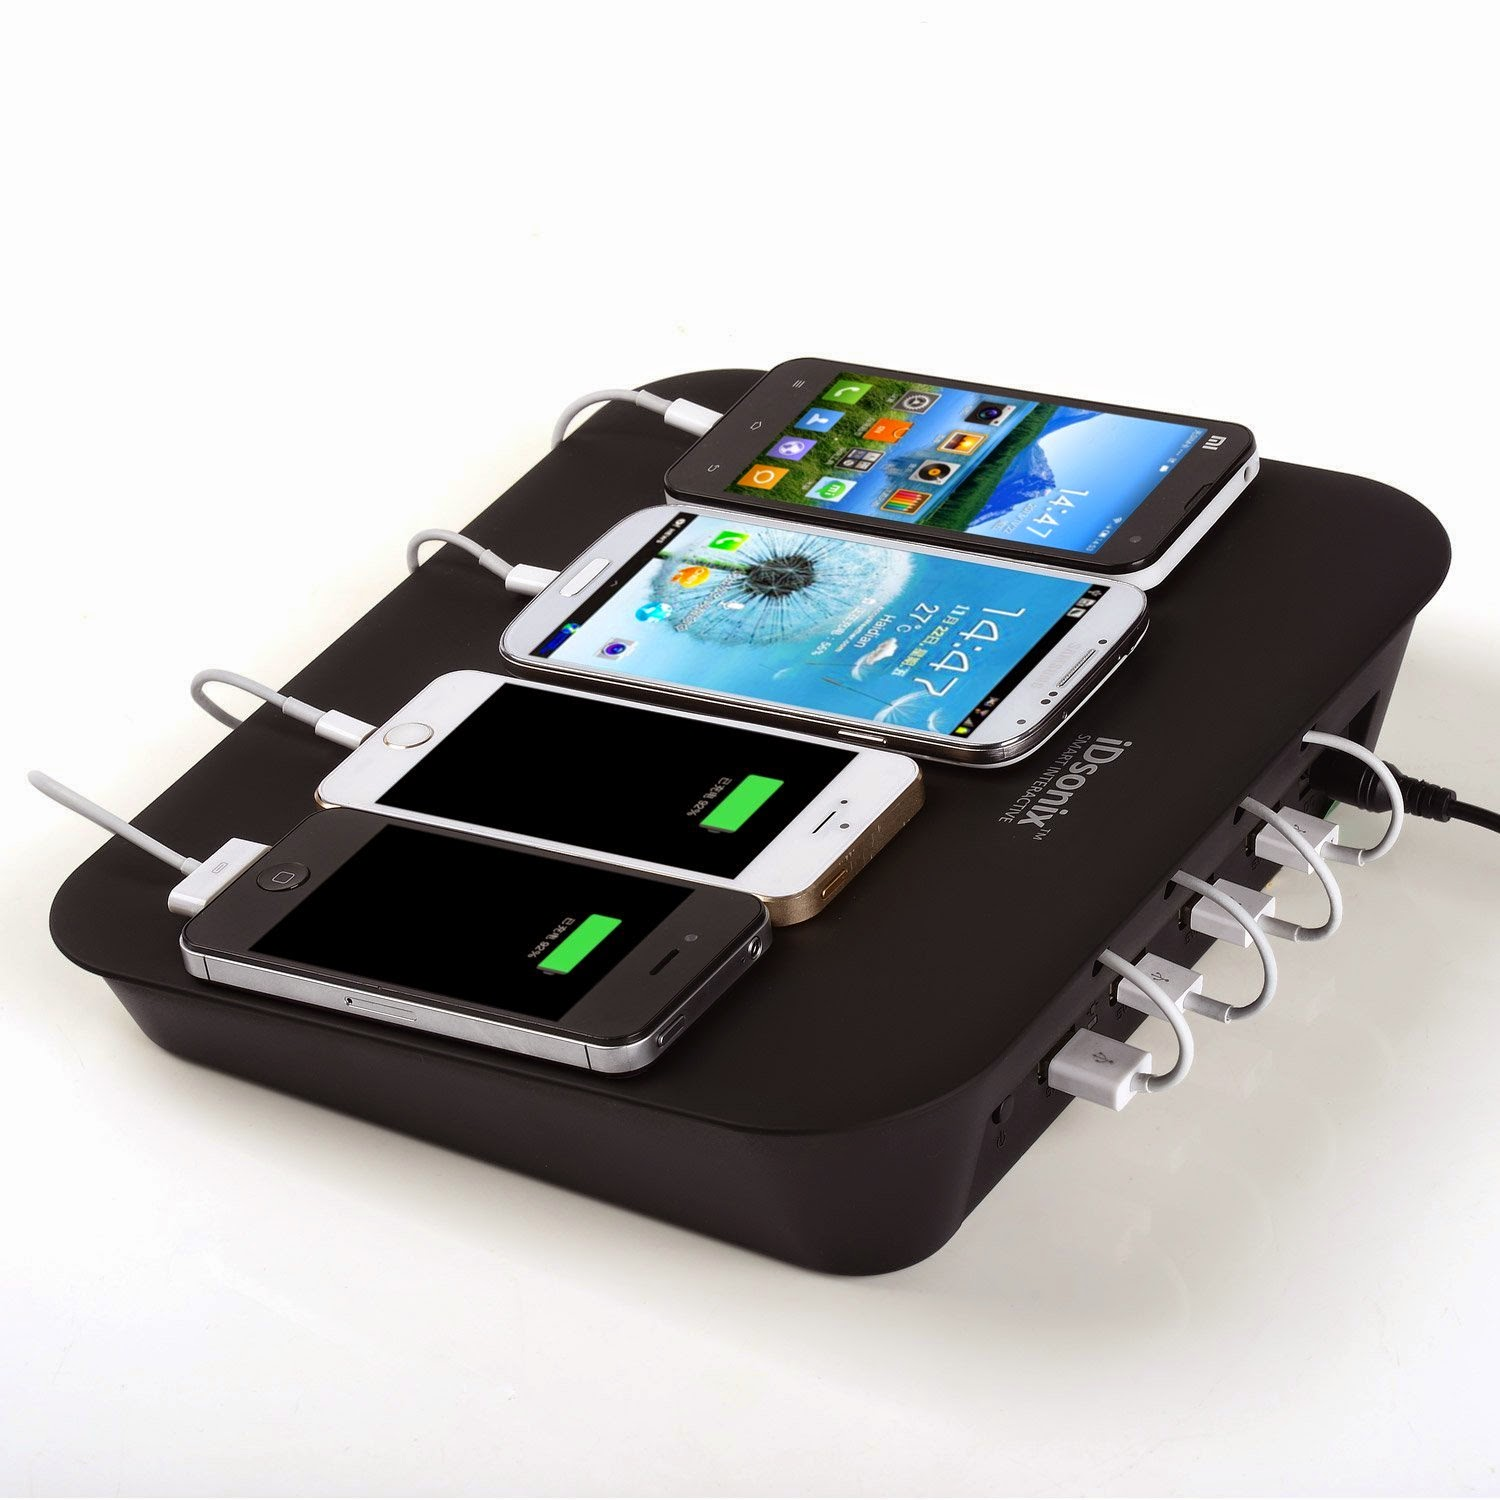 Idsonix Multiple Devices Organizer Best Affordable